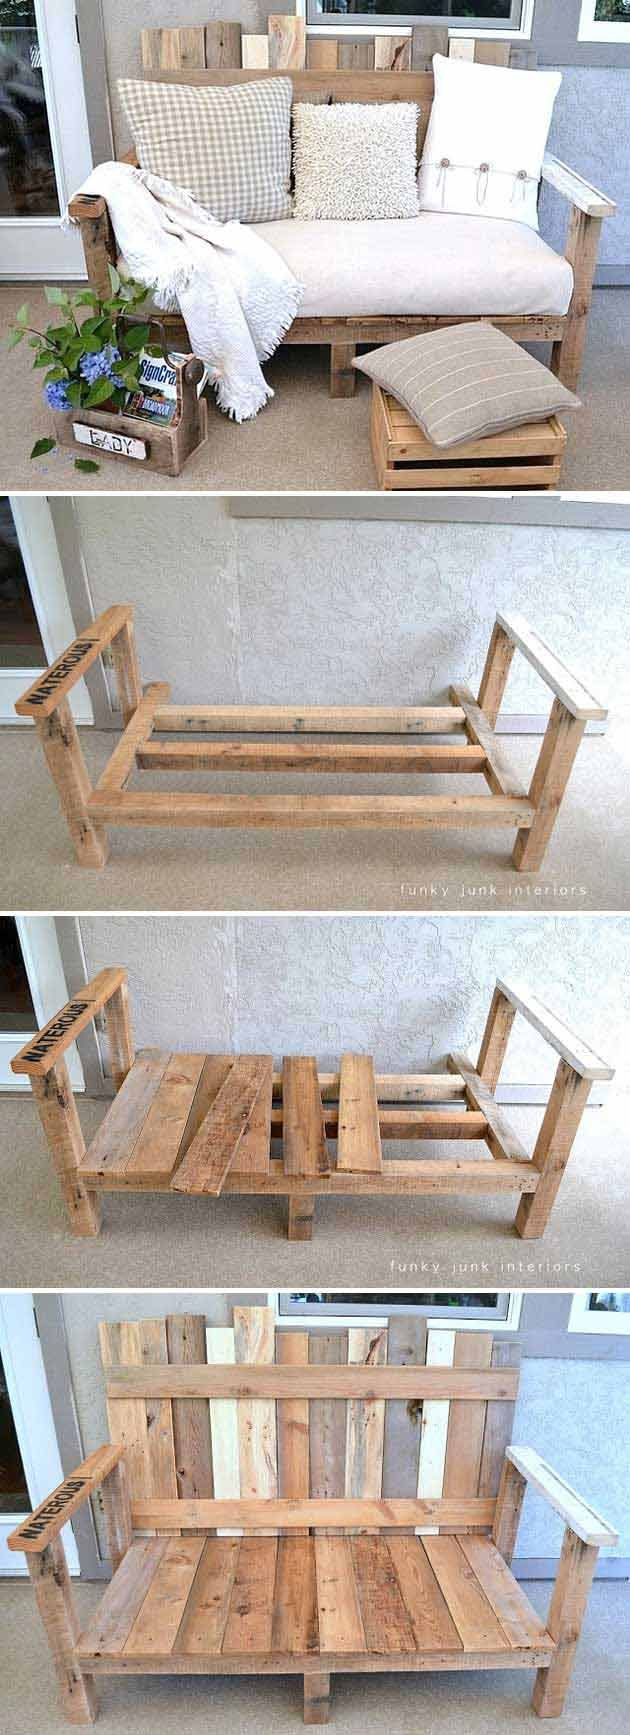 Photo of DIY Pallet Coffee Table Gets an Outdoor Makeover – Southern Revivals